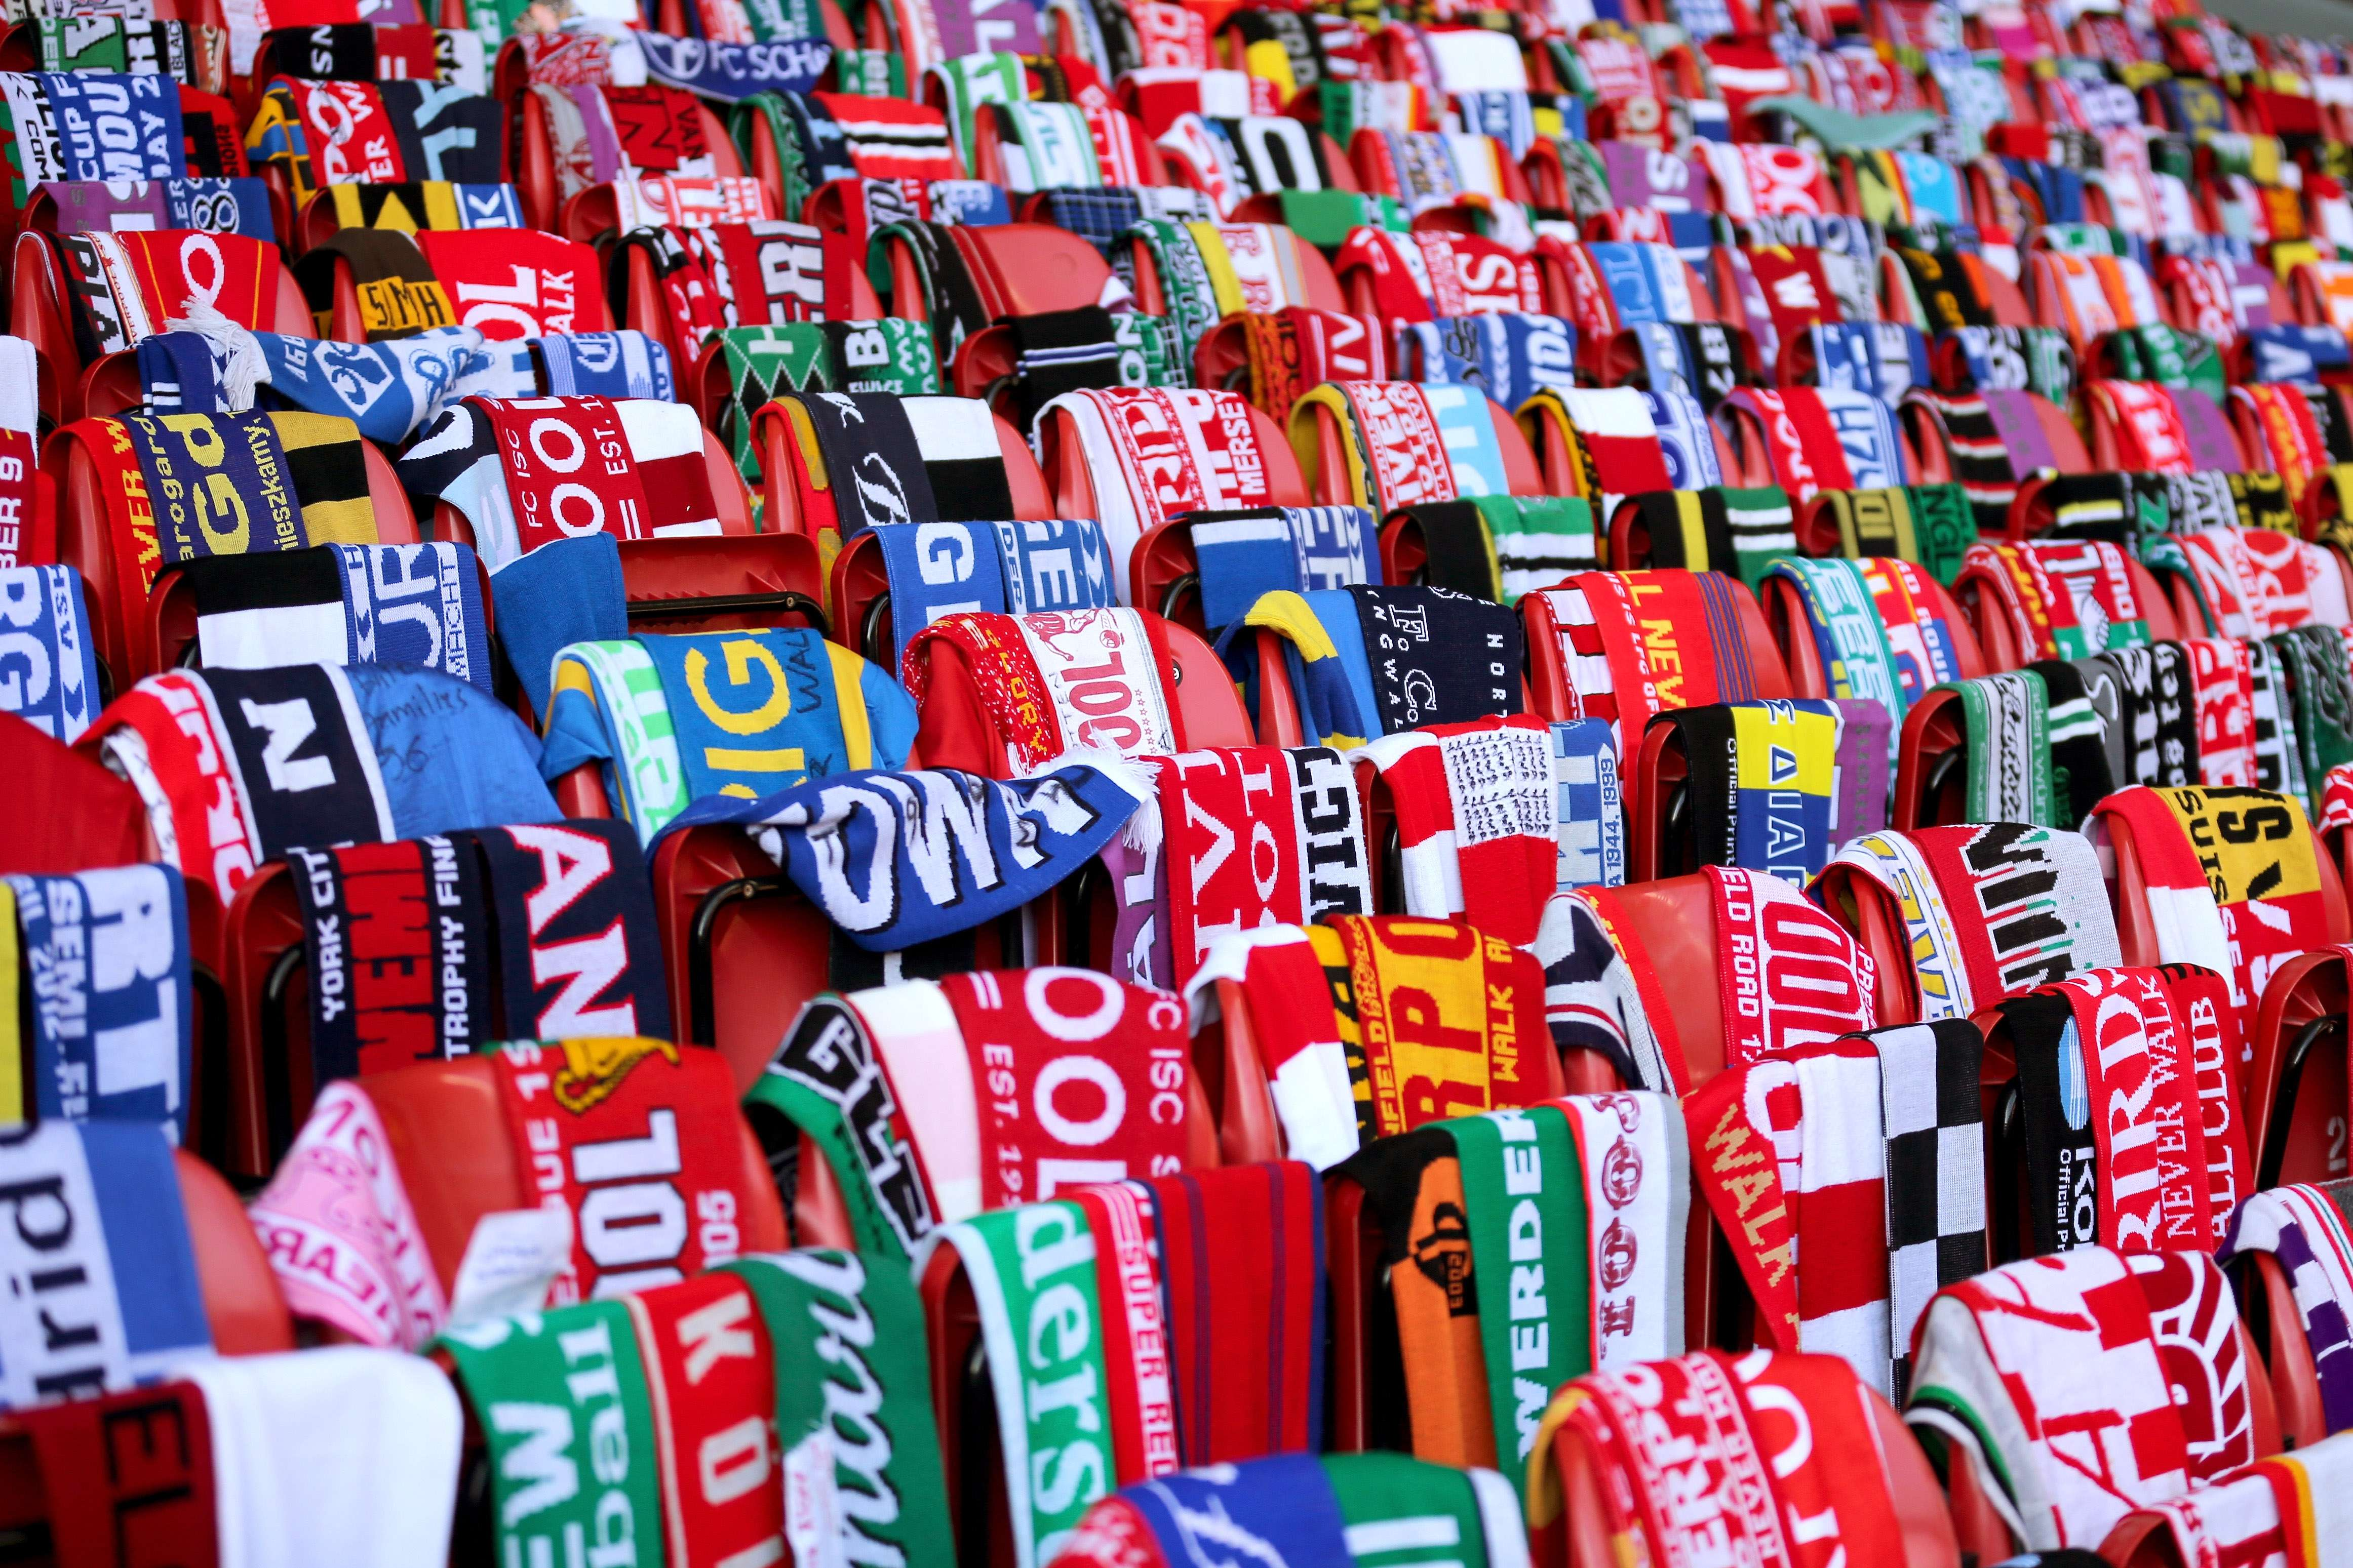 Hillsborough: Liverpool fans, players honor victims